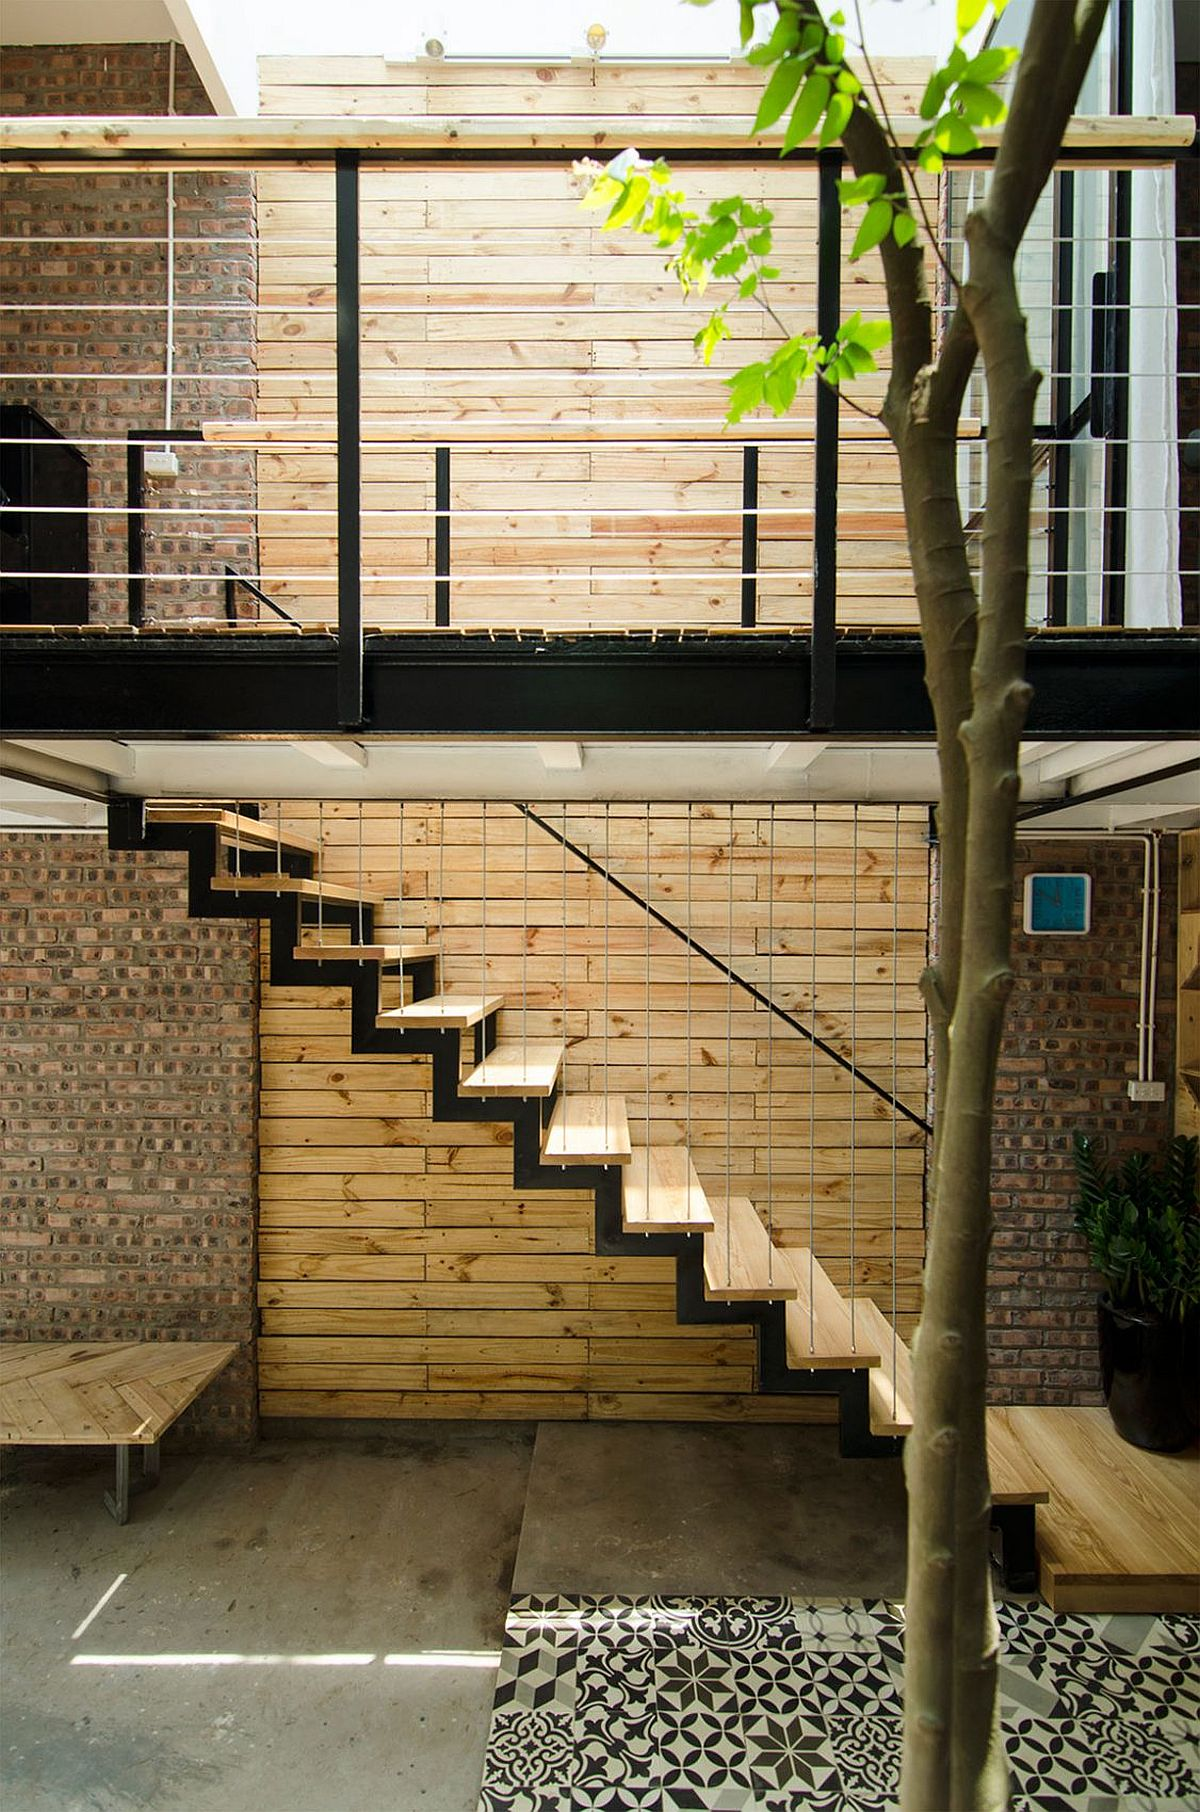 Wood and brick surfaces add textural beauty to the small interior